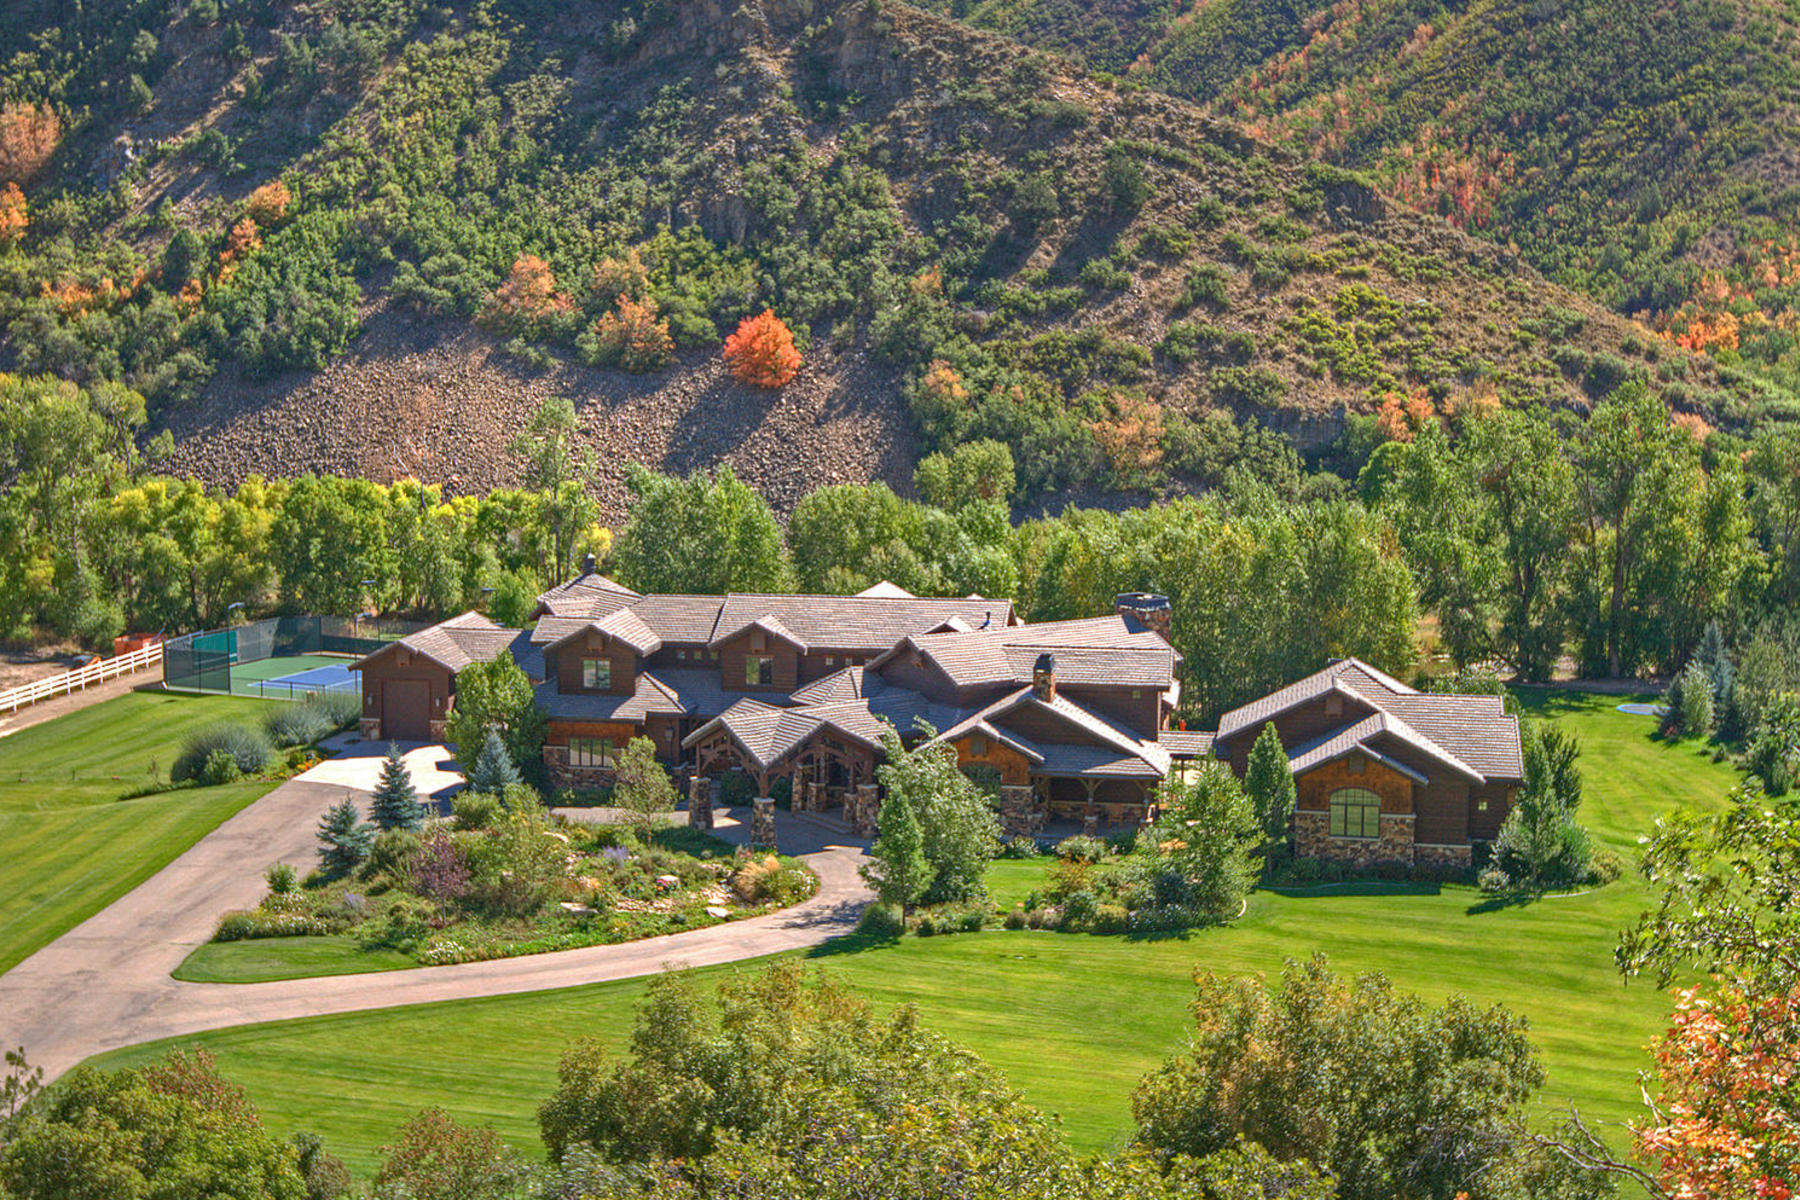 一戸建て のために 売買 アット Incredible Estate in Hobble Creek Canyon 887 Hobble Creek Canyon Rd Springville, ユタ, 84663 アメリカ合衆国